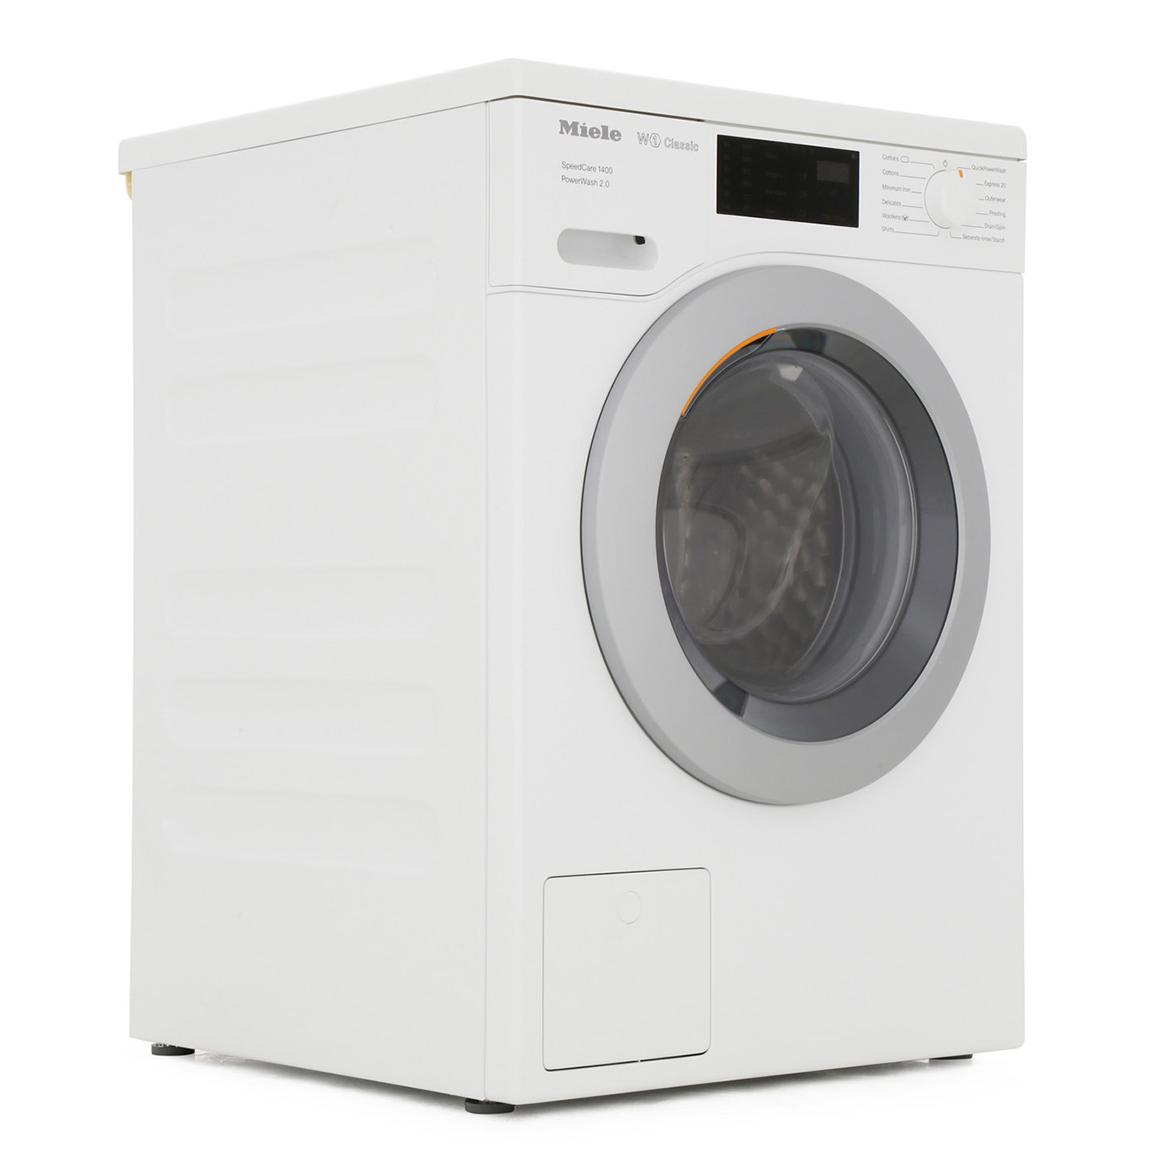 Miele W1 Speedcare WDD320 8Kg Washing Machine with 1400 rpm - White - A+++ Rated